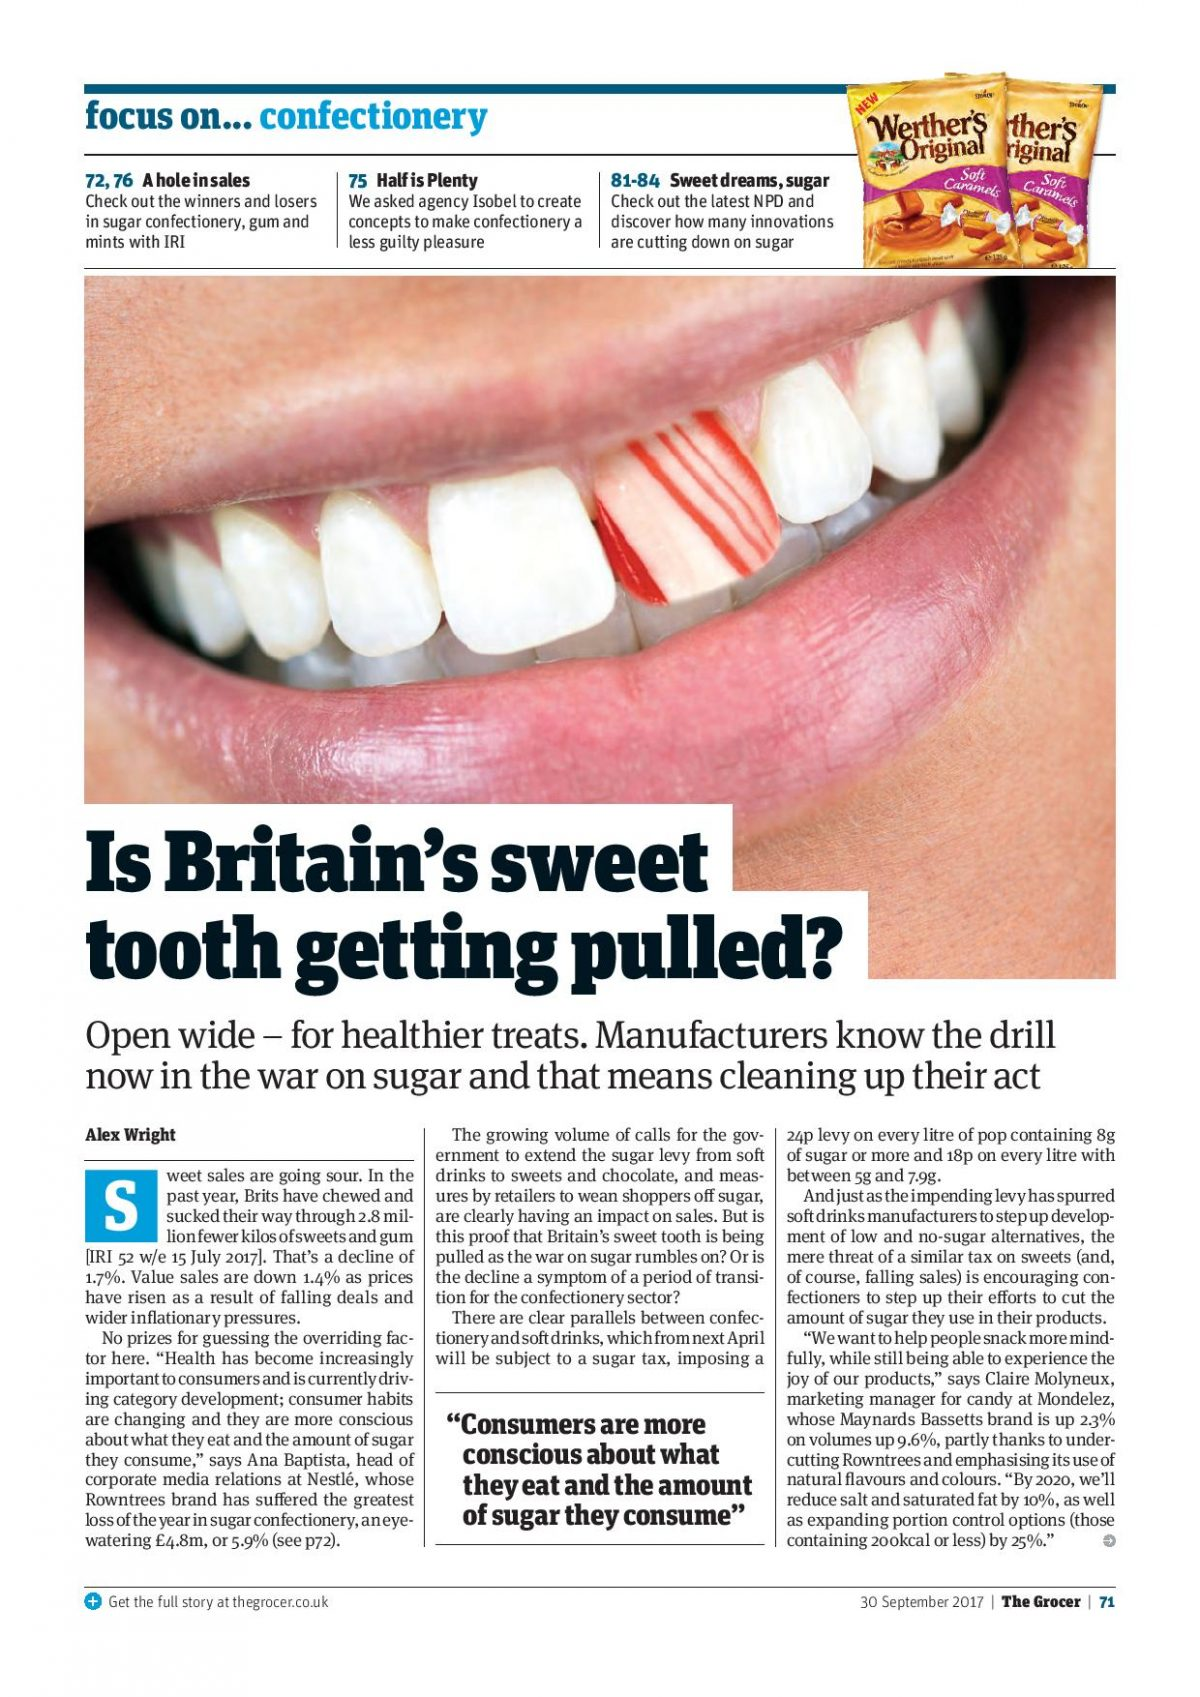 is-britain-s-sweet-tooth-getting-pulled1-page-001